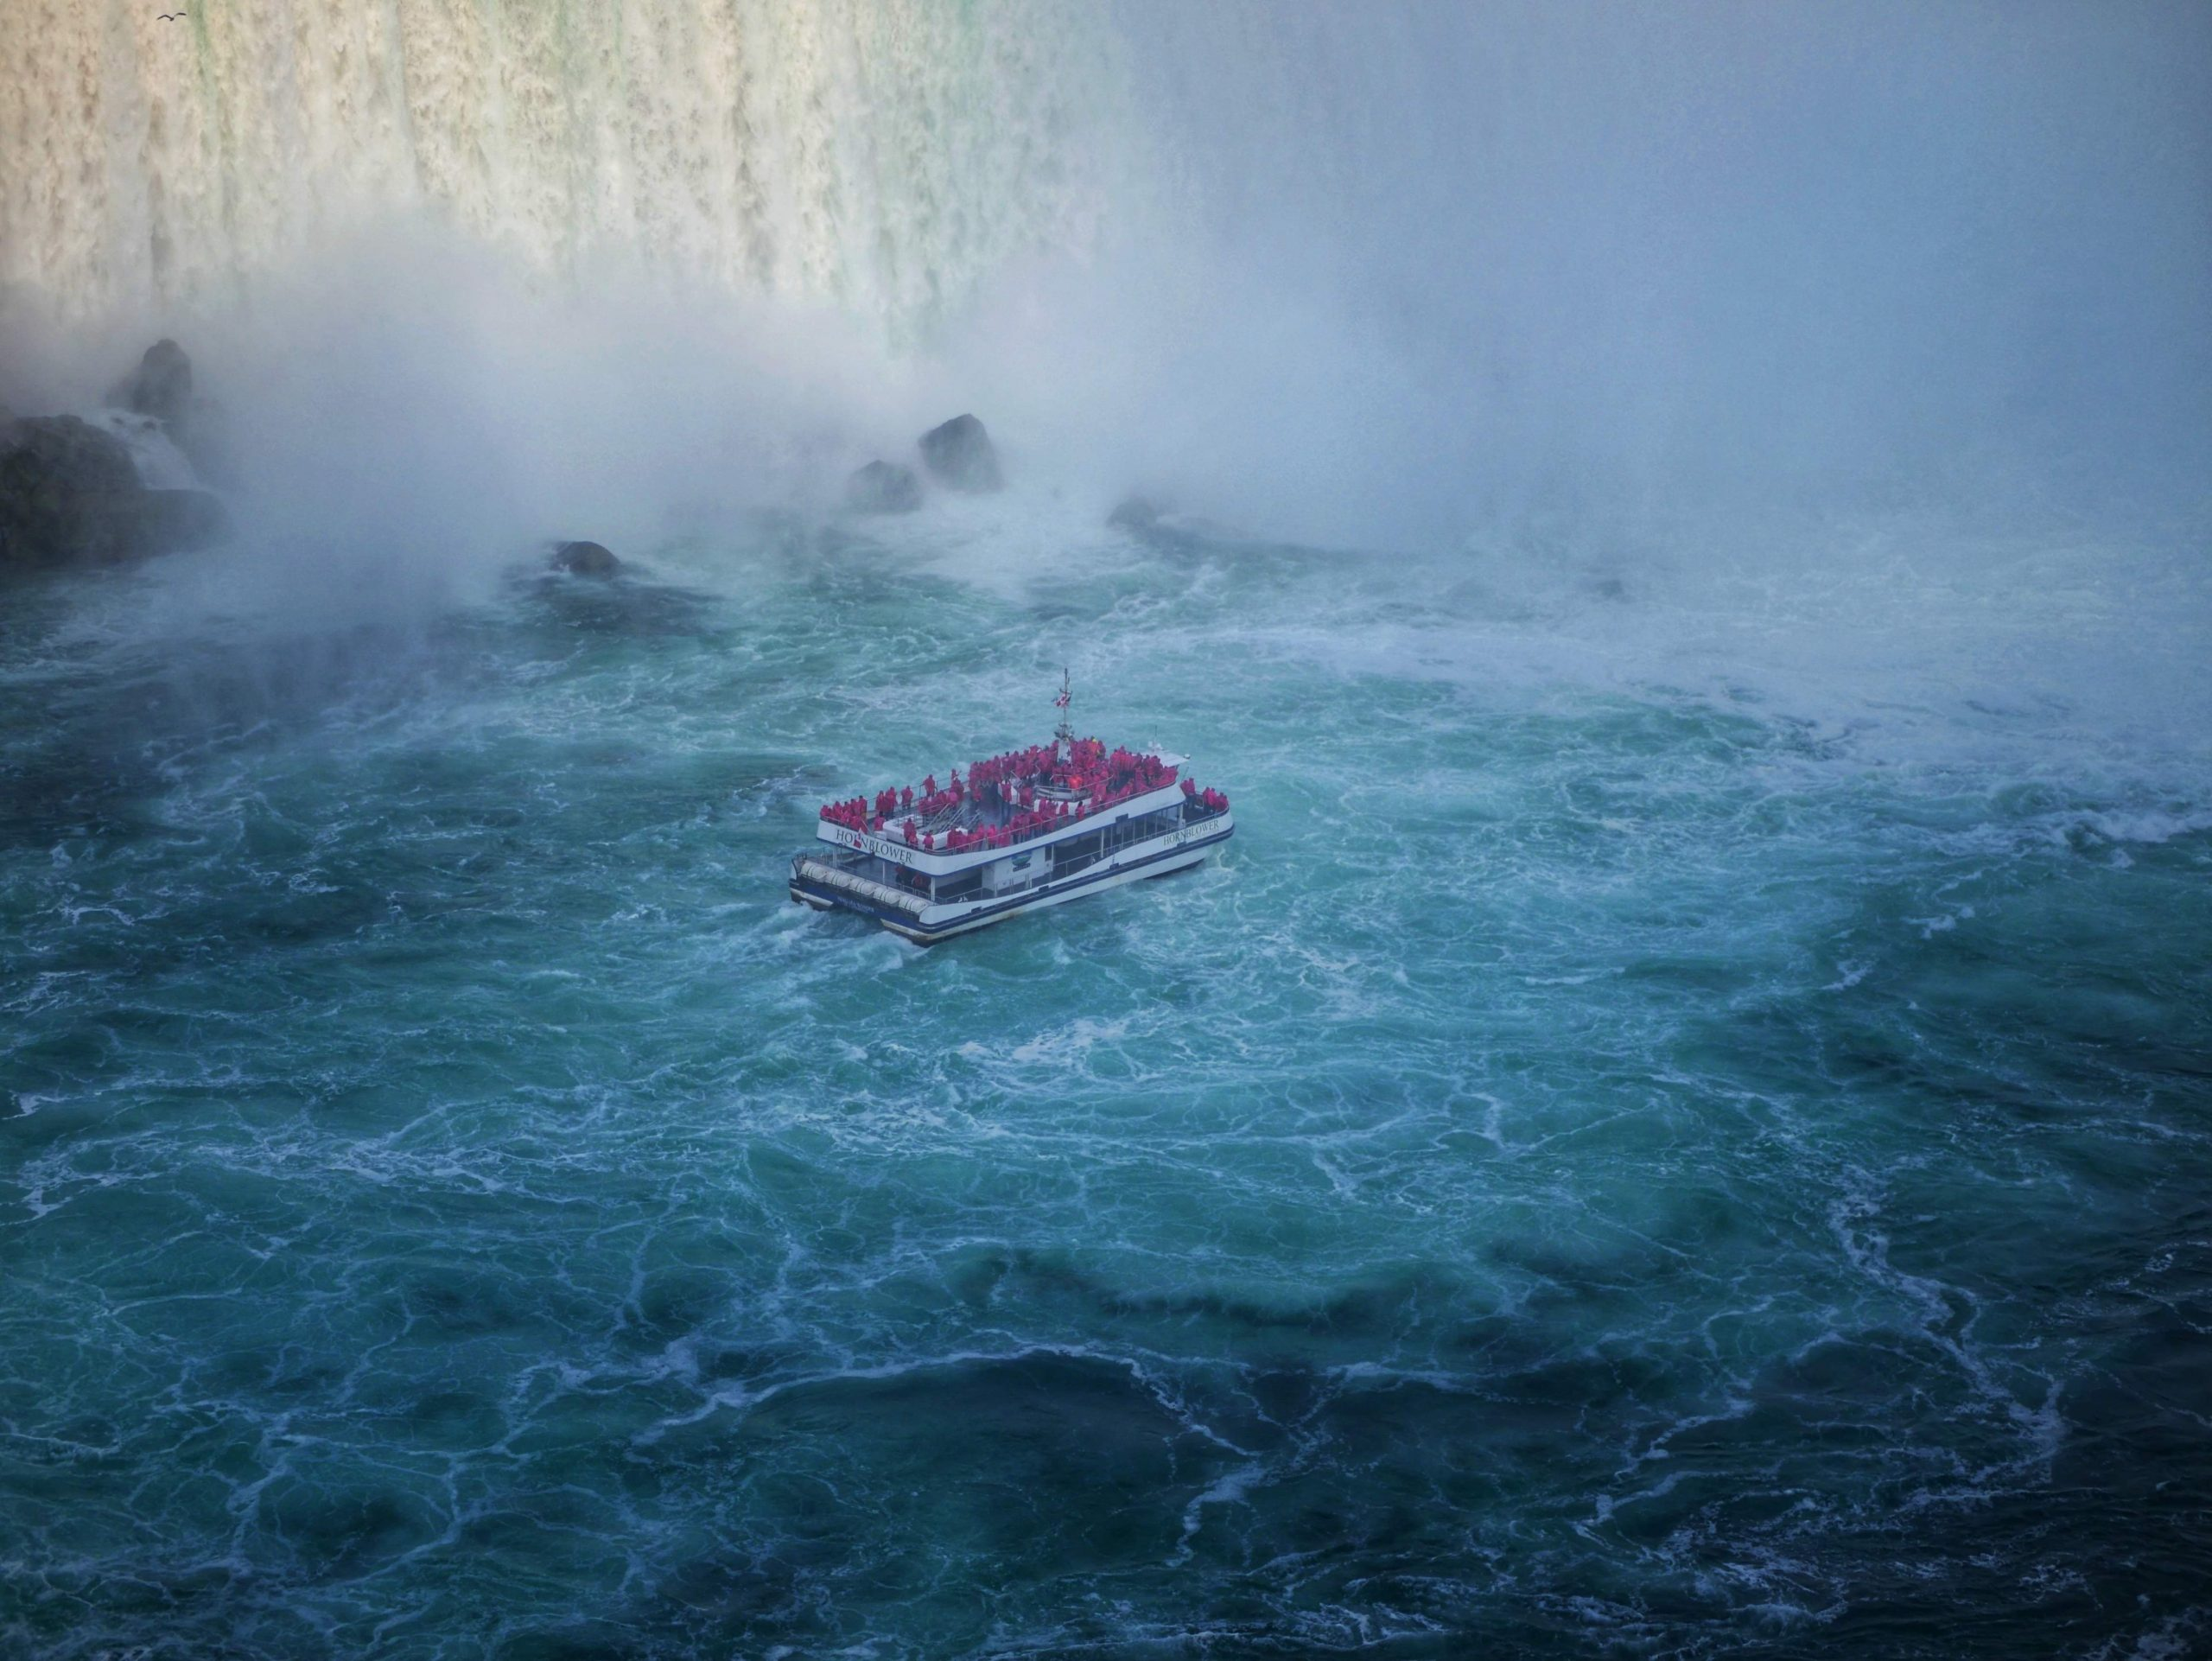 Visit Niagara Falls - Maid of the Mist